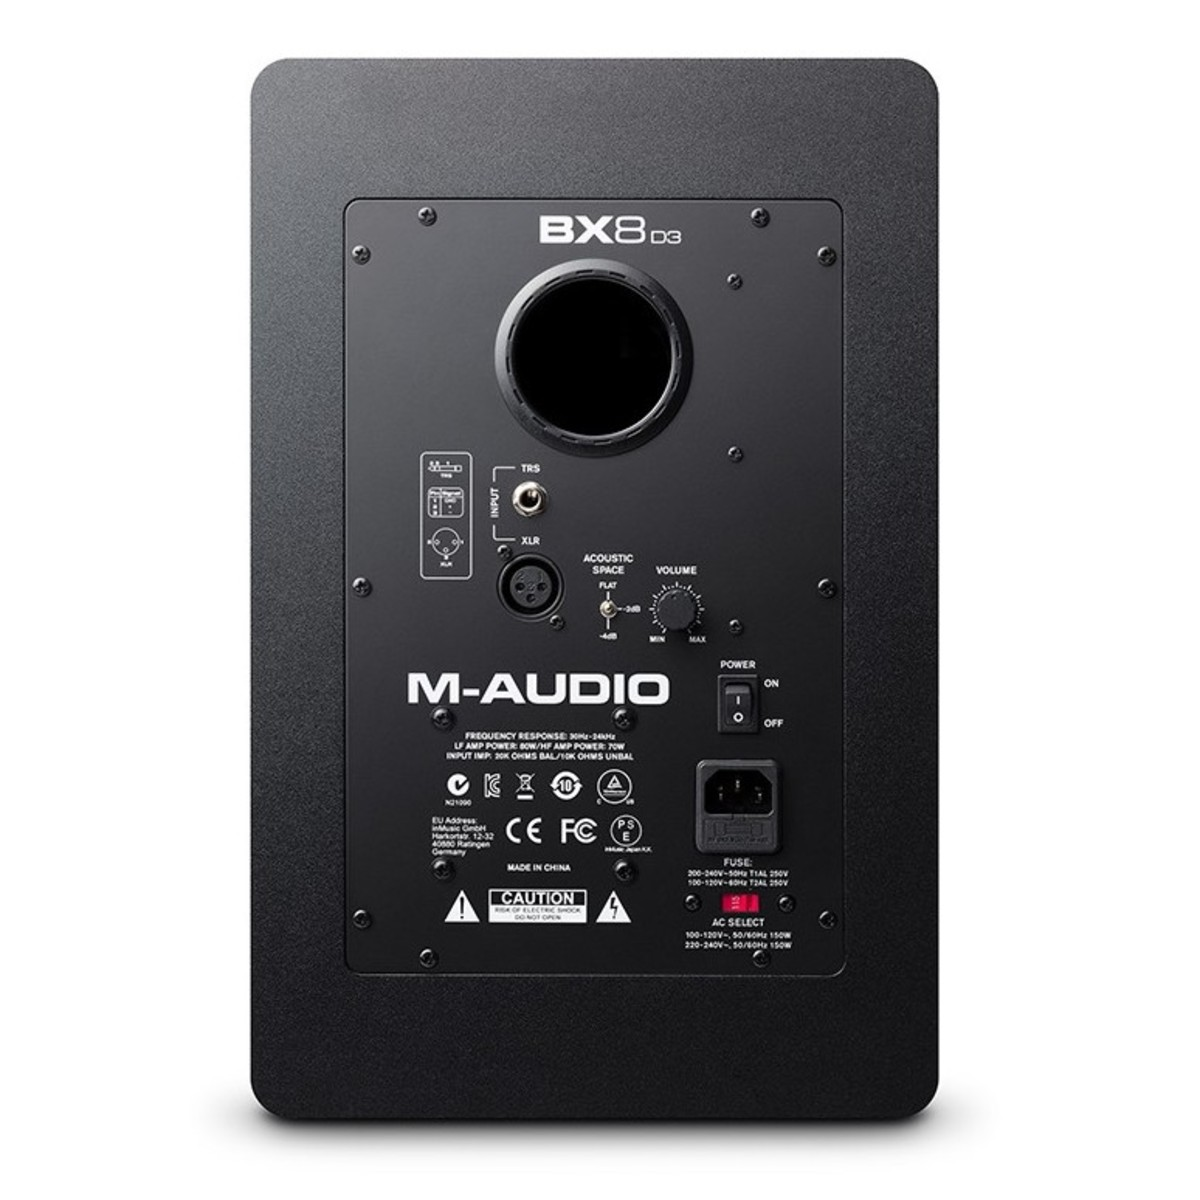 m audio bx8 d3 studio monitor b stock at gear4music. Black Bedroom Furniture Sets. Home Design Ideas